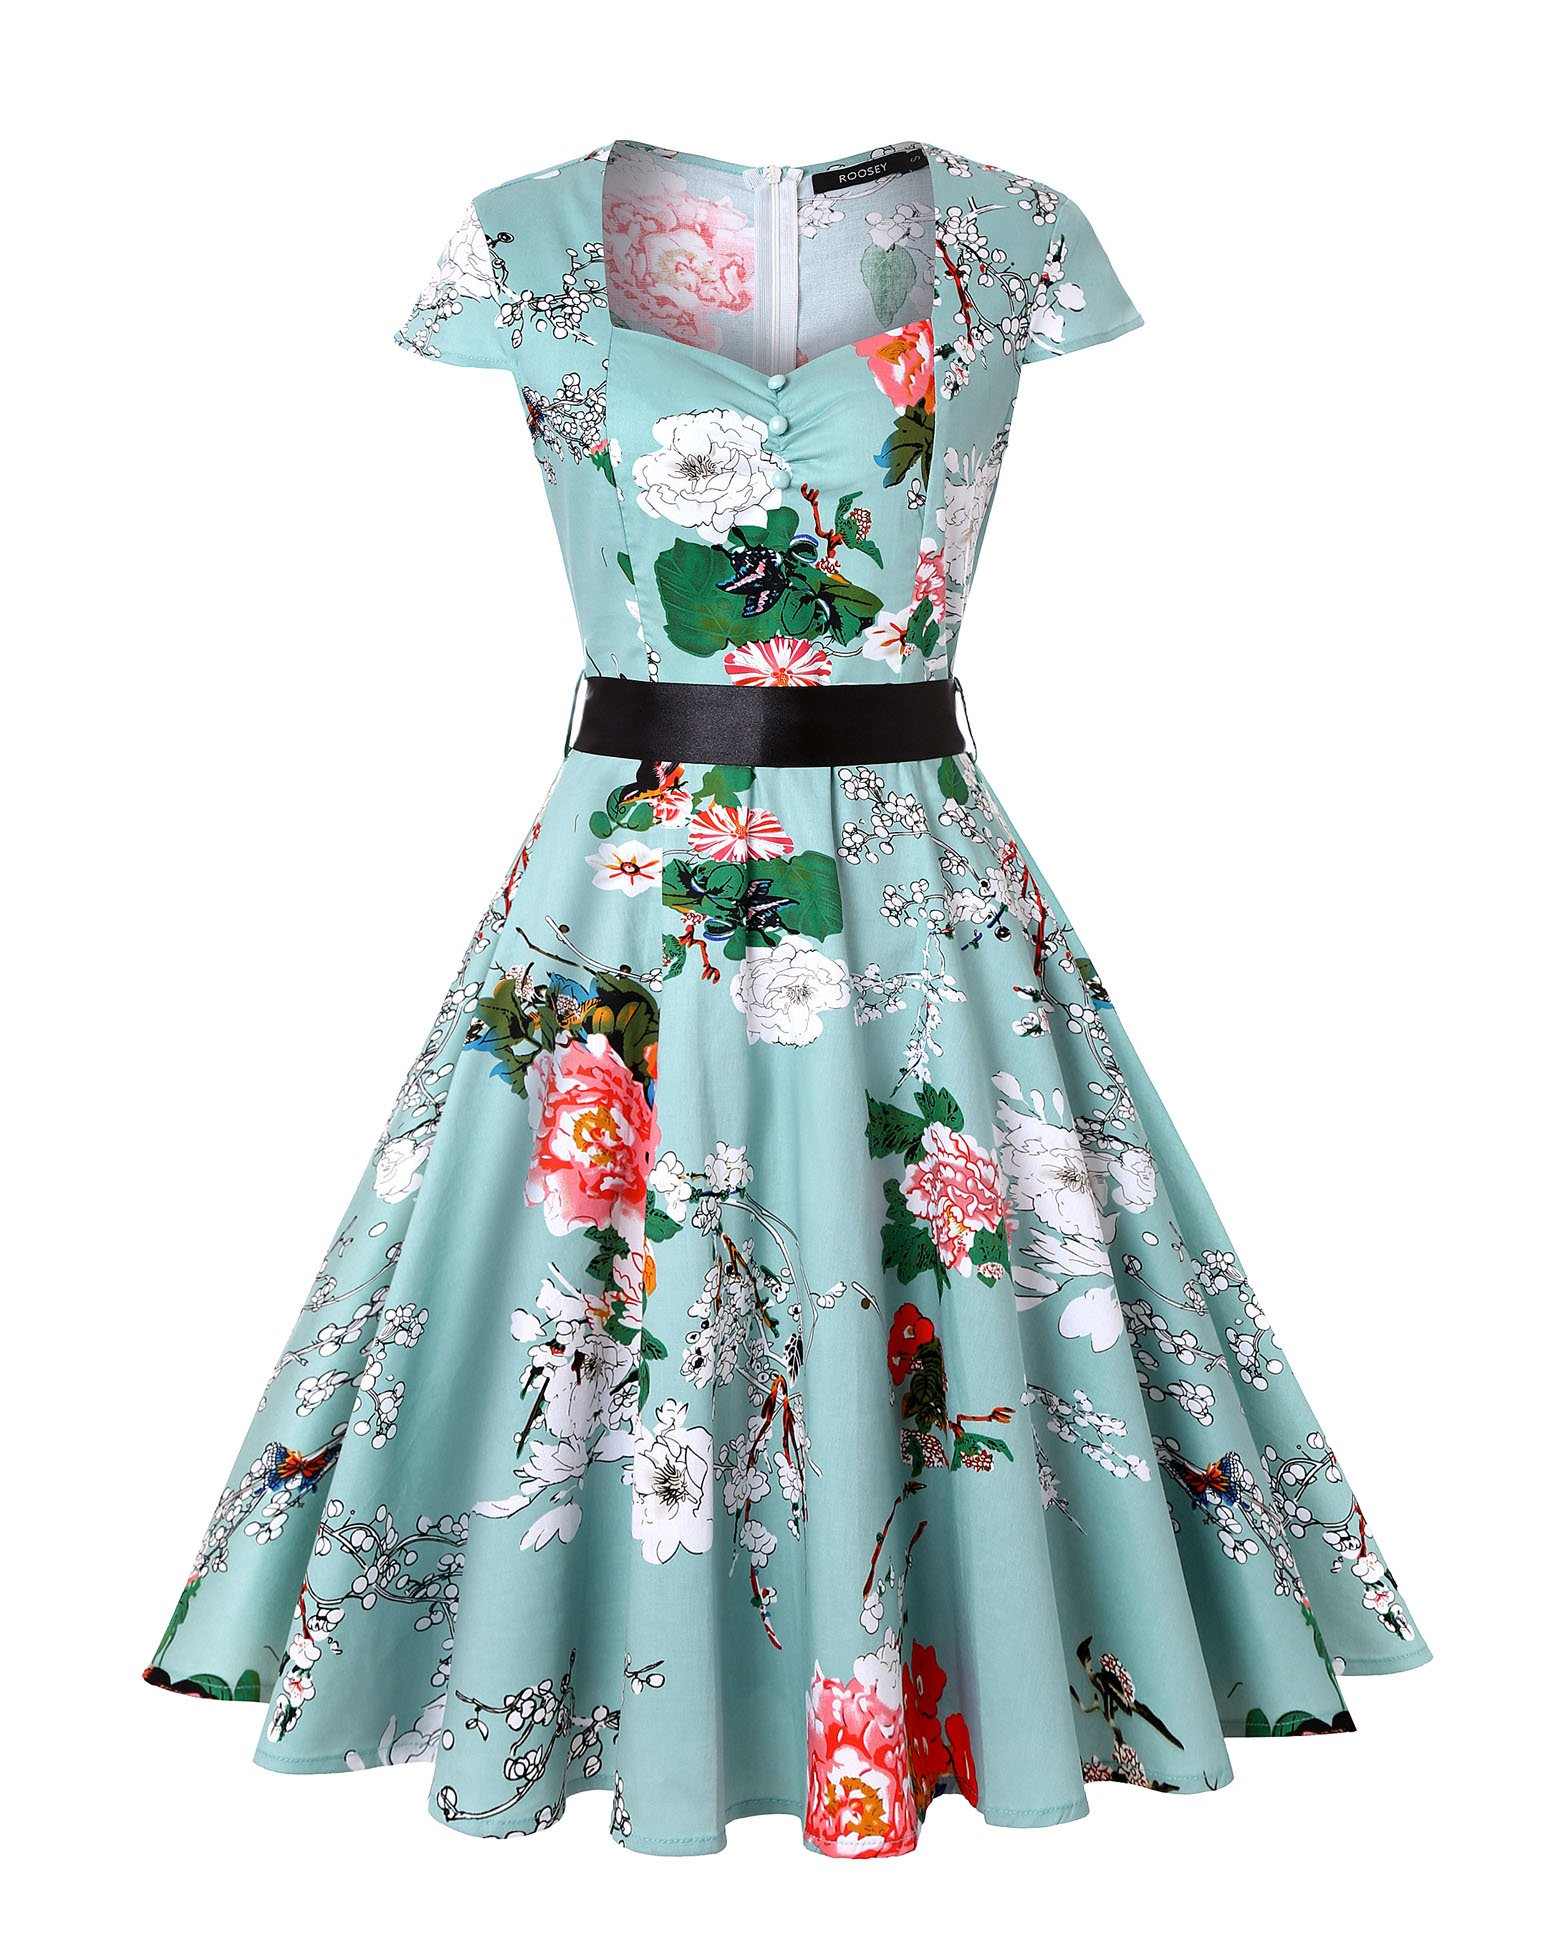 ROOSEY Women Vintage 1950s Retro Cap Sleeve Rockabilly Prom Party Wedding Dresses with Pockets